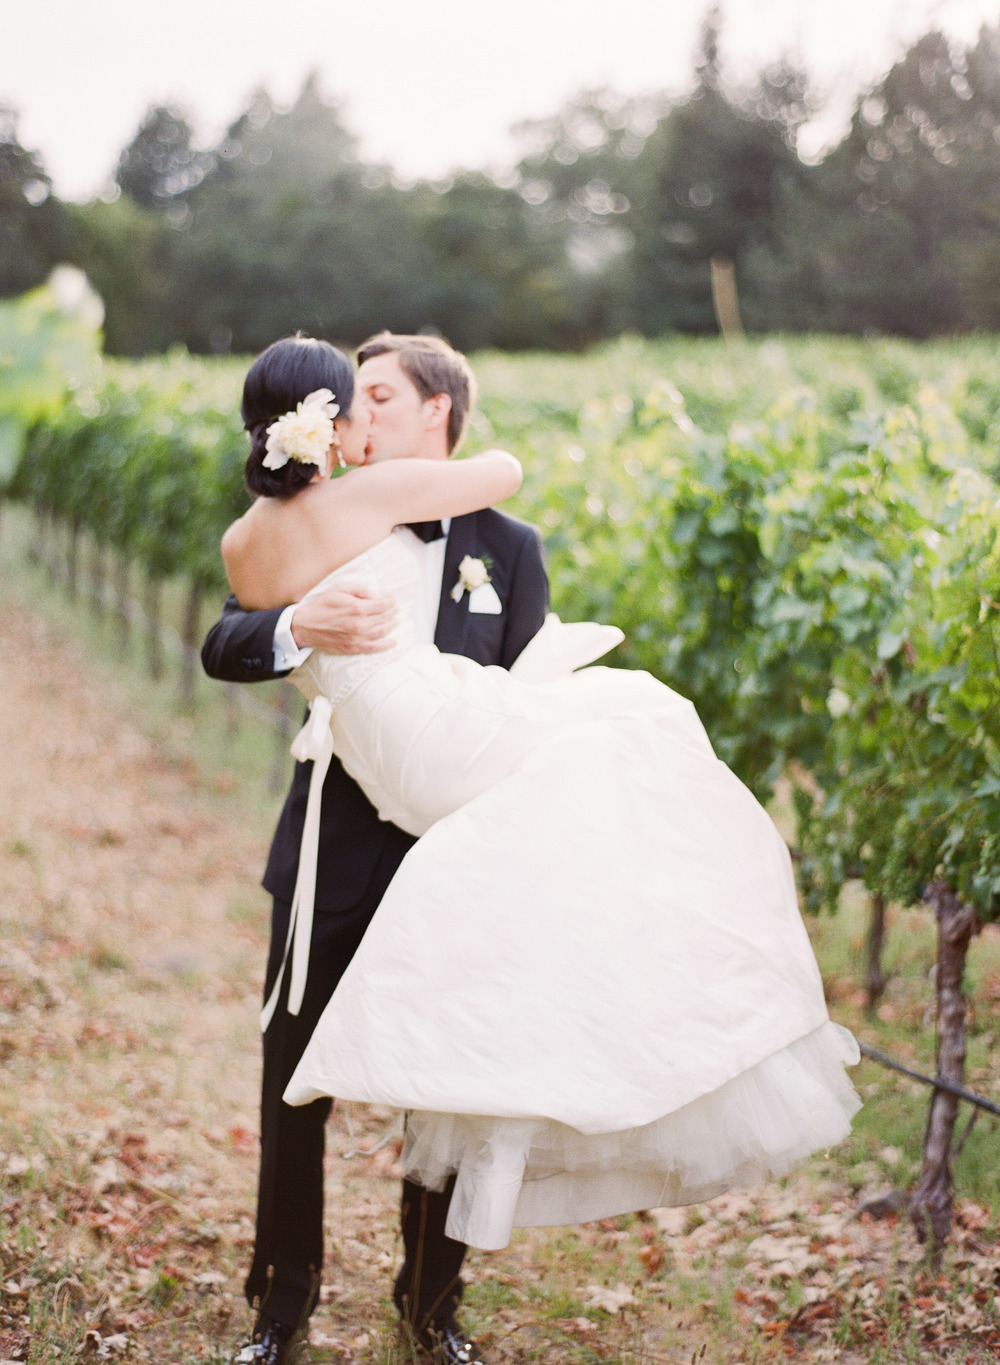 Peter lifts up his bride for a kiss in a Napa vineyard during a couple session with Sylvie Gil